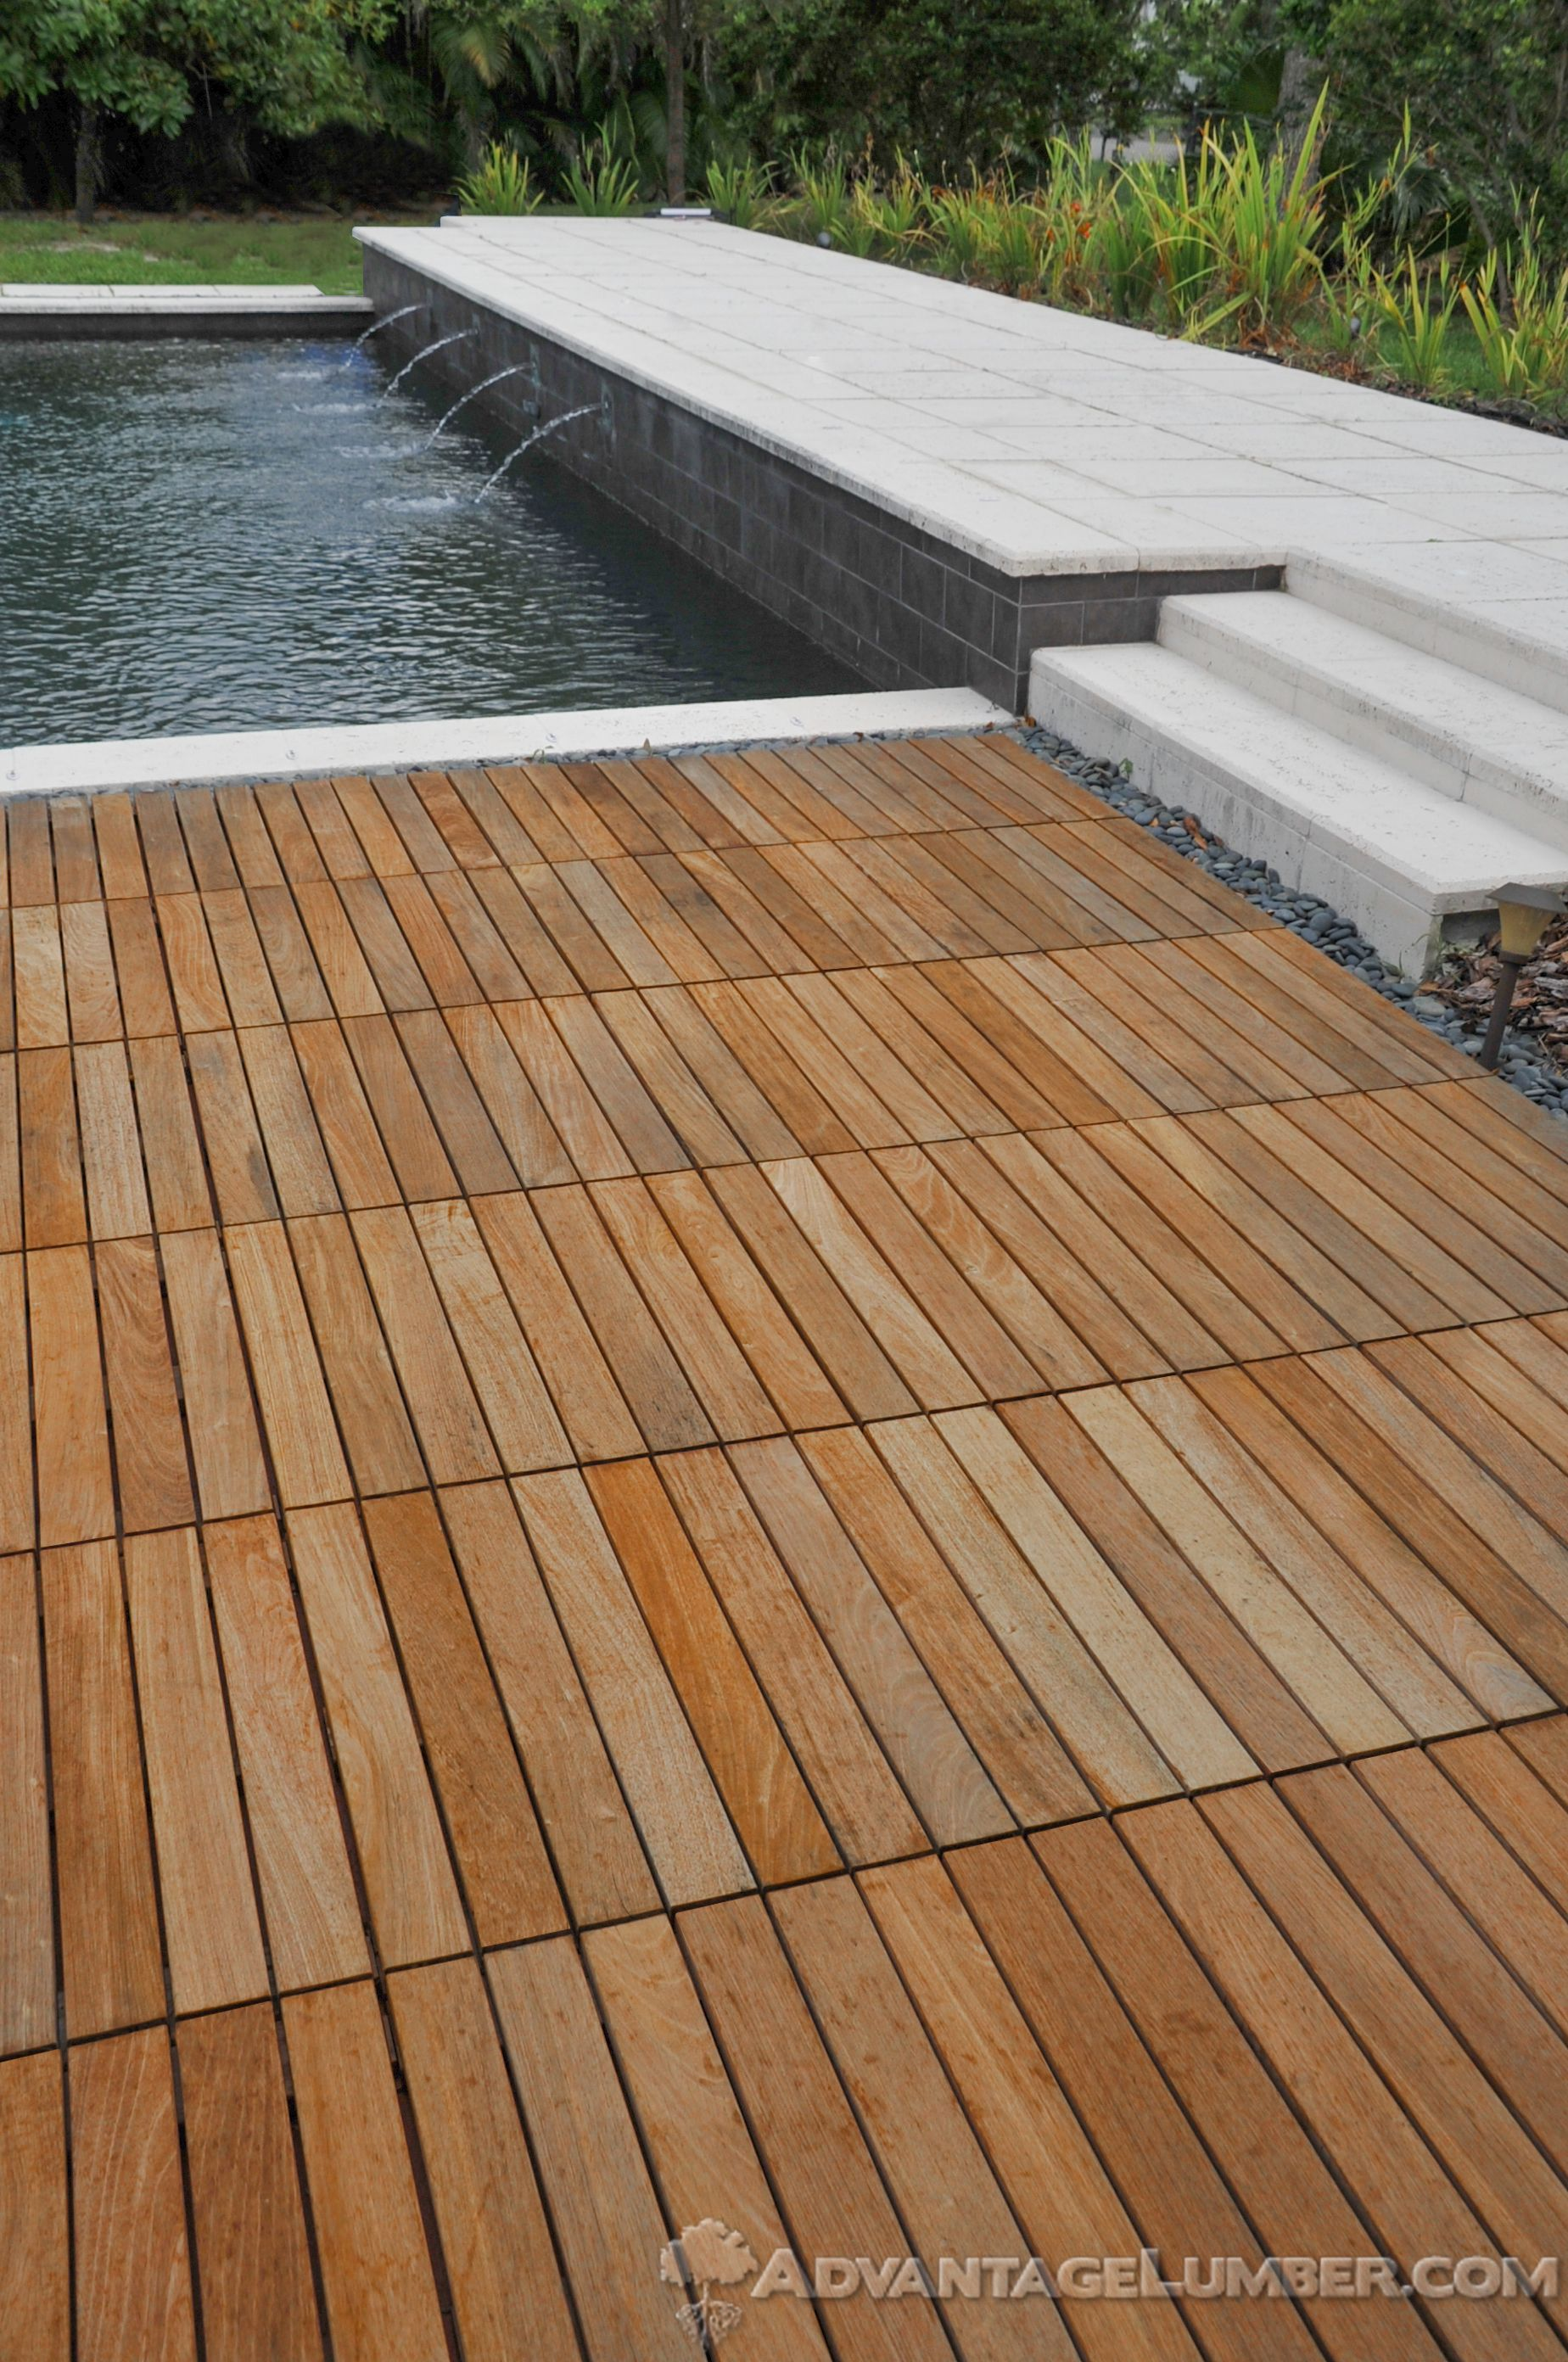 Decking Tiles Smooth Ipe Decking Tiles 20x20 Deck Tiles Ipe